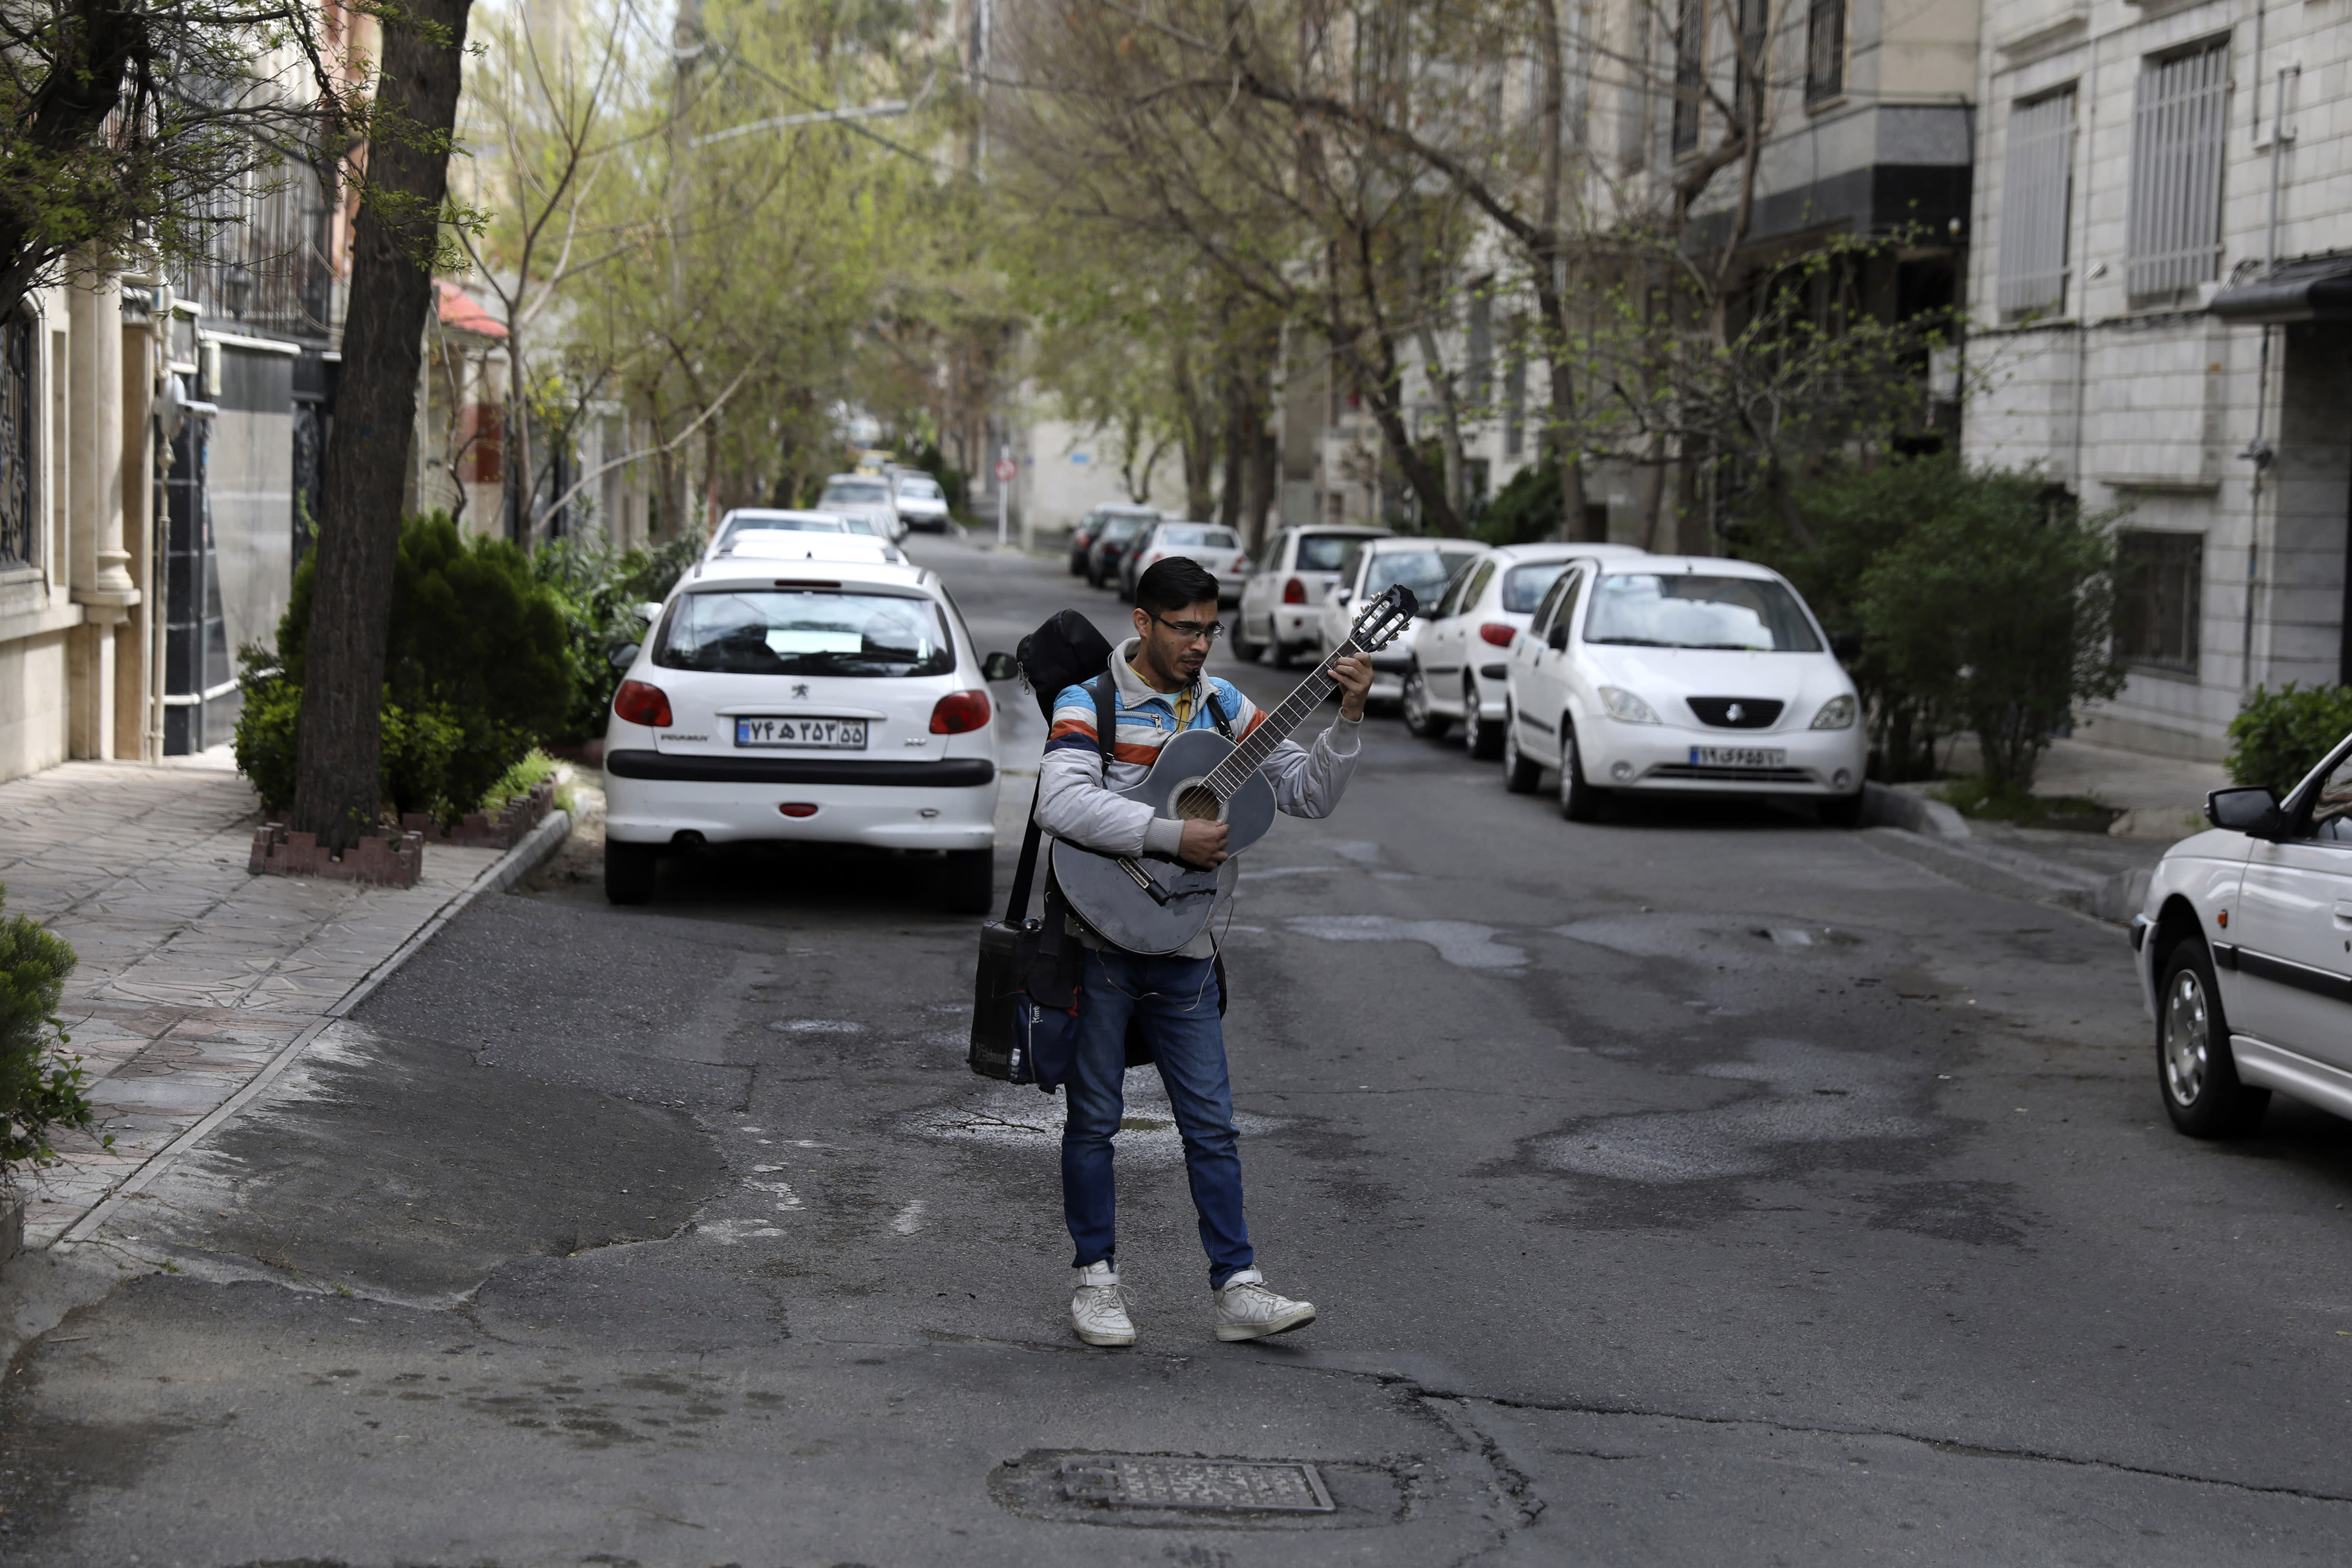 A street musician sings and plays music in an empty street in Tehran, Iran, Thursday, March 26, 2020. Iran is battling the worst new coronavirus outbreak in the region and authorities have advised people to stay at home and trying to enforce new policy imposing the kinds of lockdowns when the country spending the new year holidays. (AP Photo/Vahid Salemi)